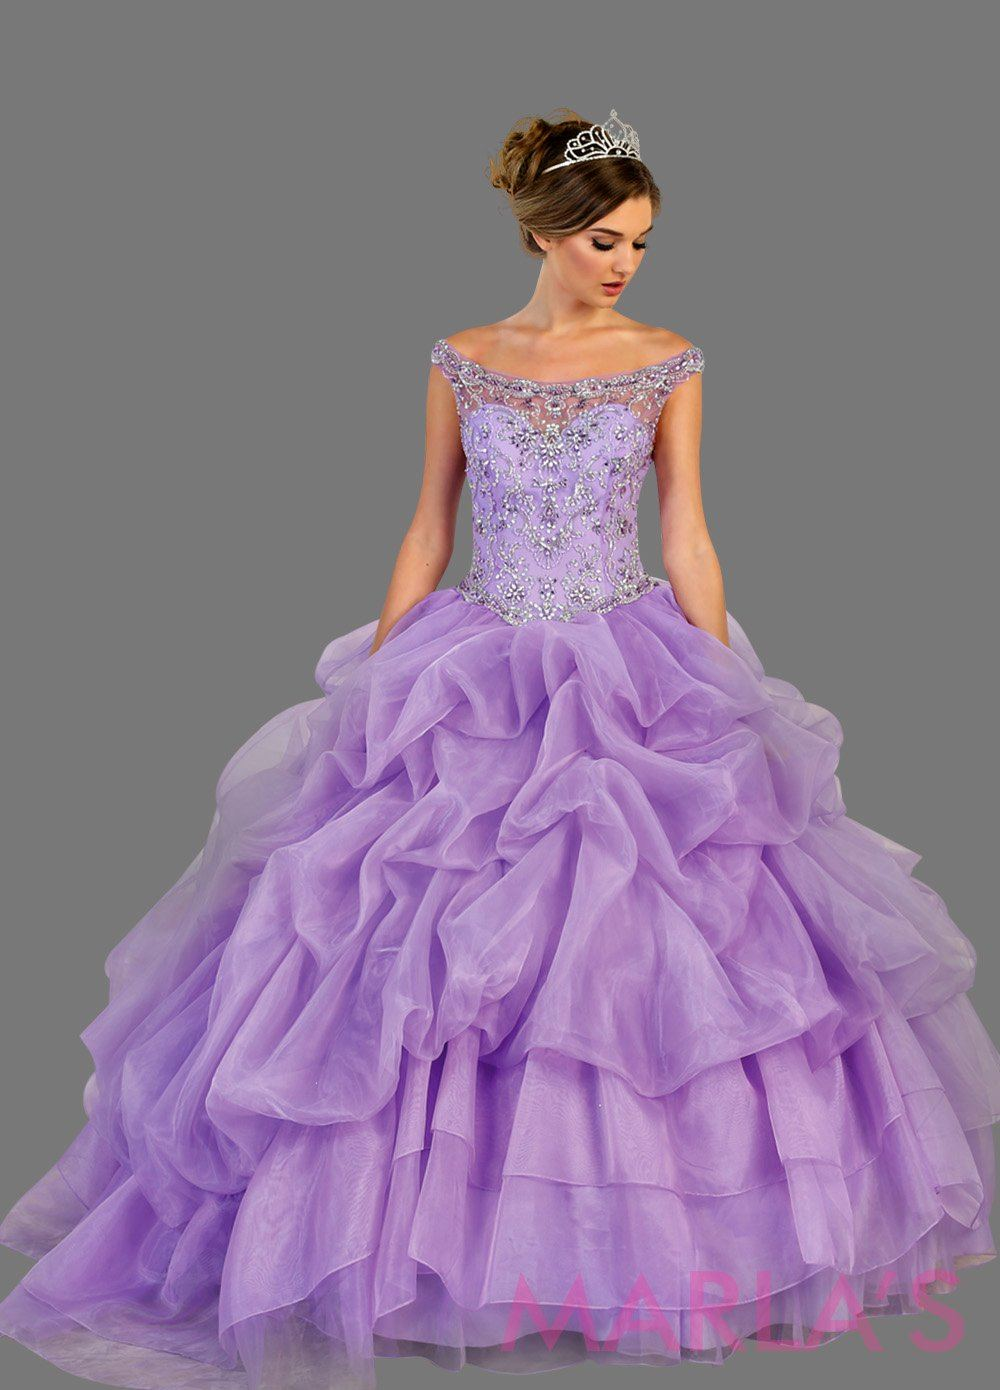 Long light purple high neck princess quinceanera ball gown with rhinestone beading and ruffled skirt. Perfect for Engagement dress, Quinceanera, Sweet 16, Sweet 15 and lilac Wedding Reception Dress. Available in plus sizes